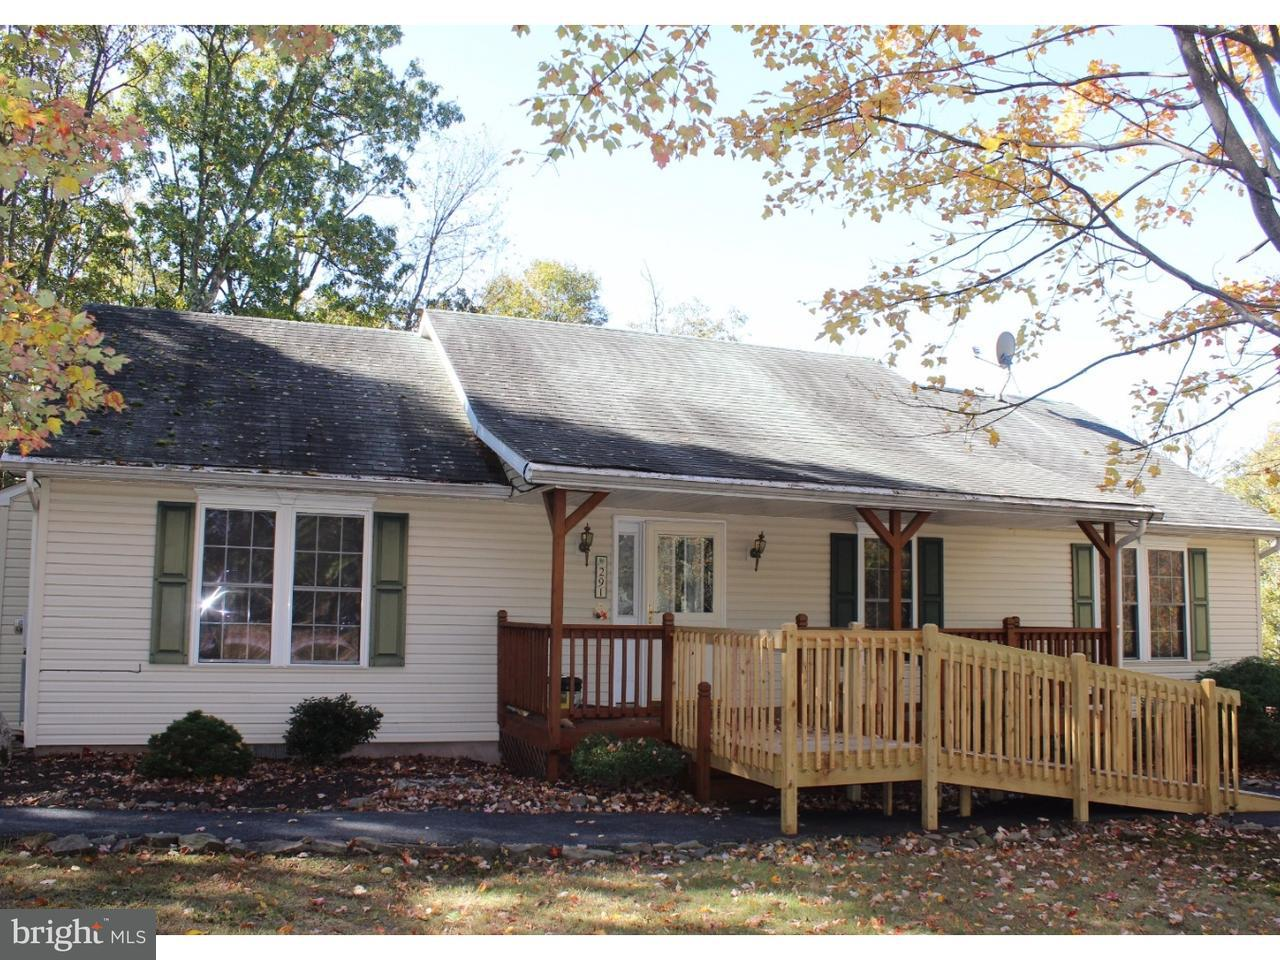 Single Family Home for Sale at 291 W SPRING MOUNTAIN Drive Zion Grove, Pennsylvania 18242 United States